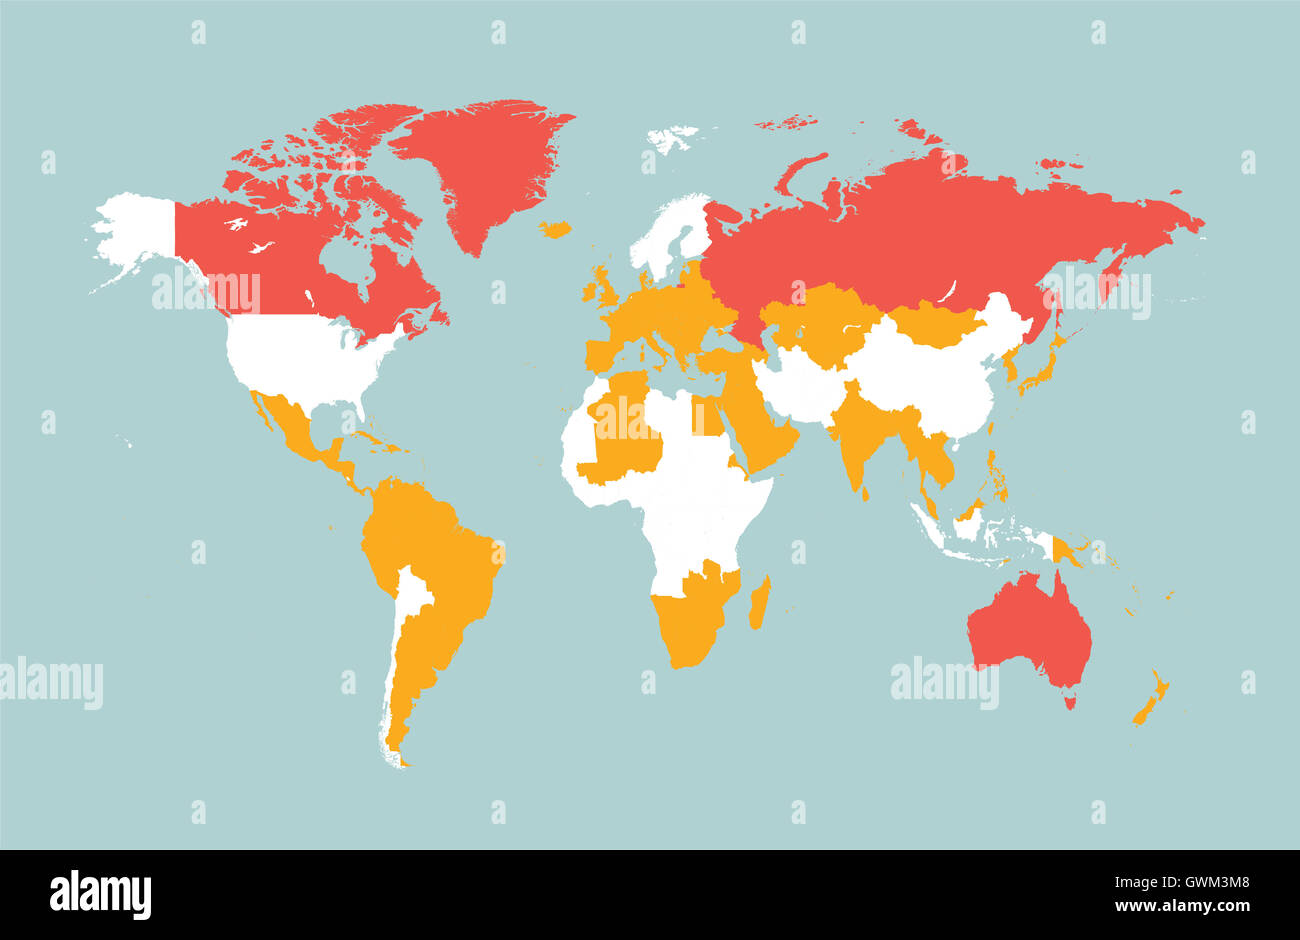 World map vector flat with countries blue stock photo 119070568 alamy world map vector flat with countries blue gumiabroncs Gallery